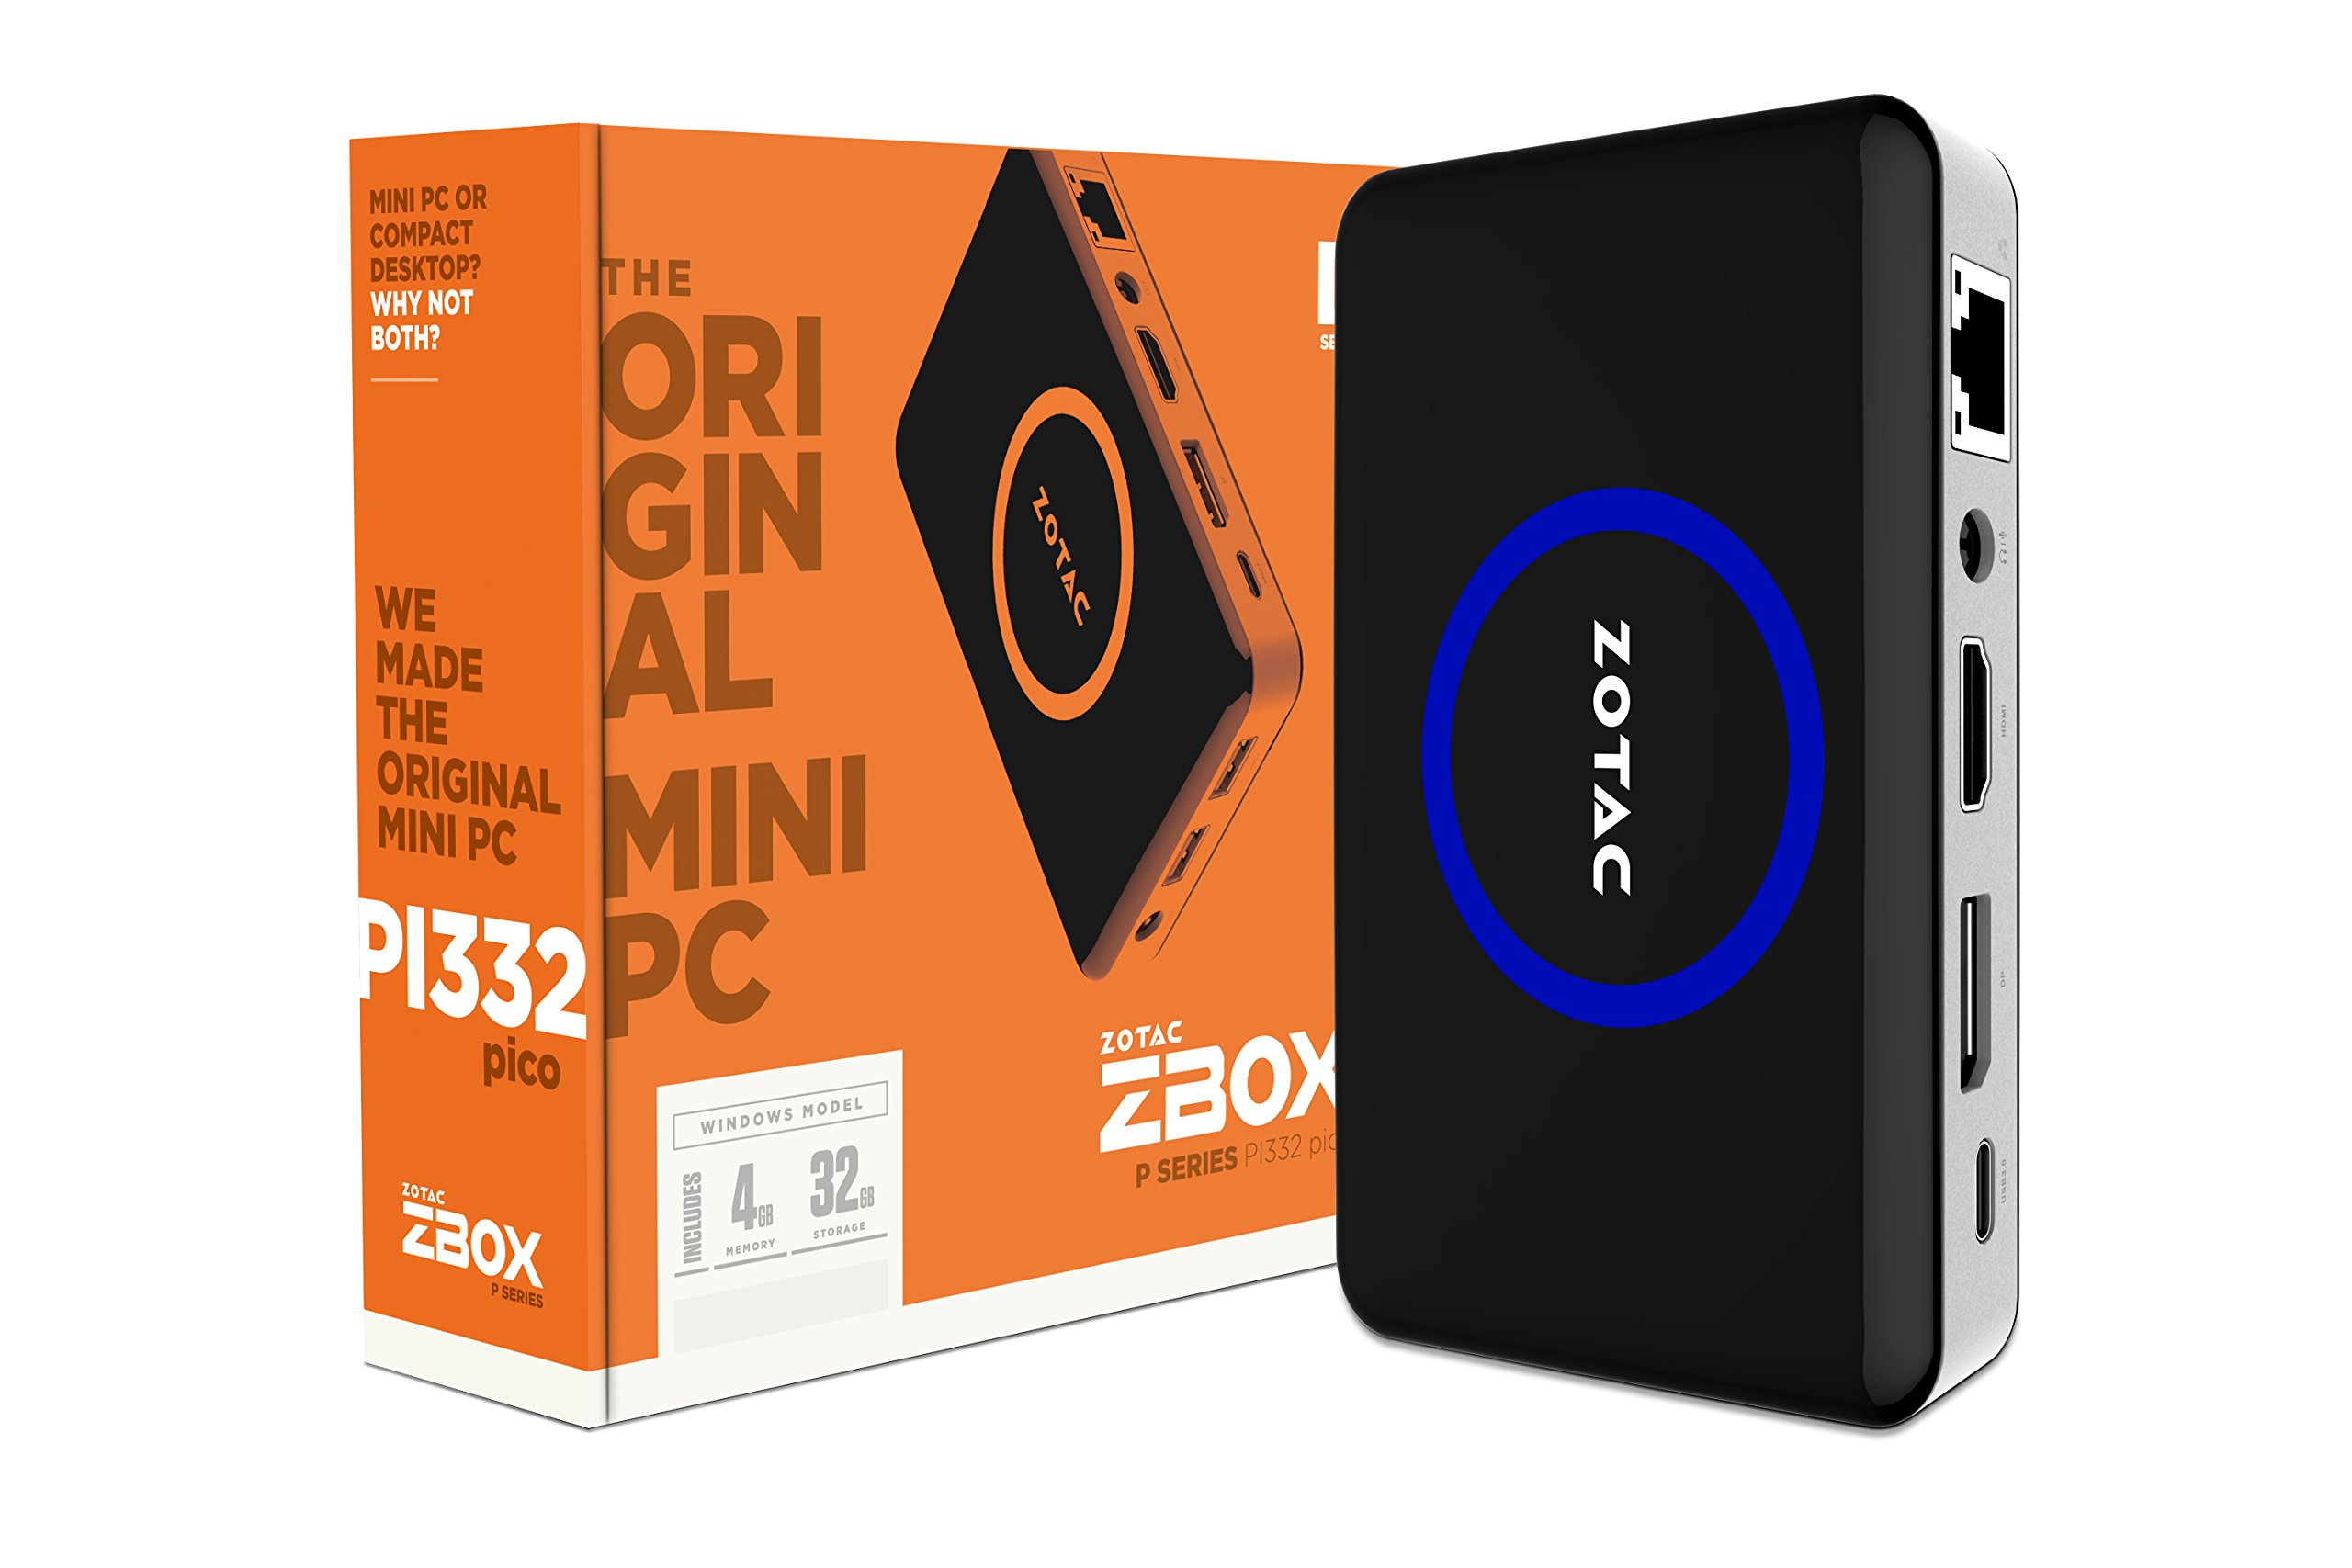 ZOTAC PICO ZBOX-PI332-W2B Intel Atom x5-Z8500 1.44GHz 4GB LPDDR3 32GB eMMC Intel HD Graphics Windows 10 Home Mini PC